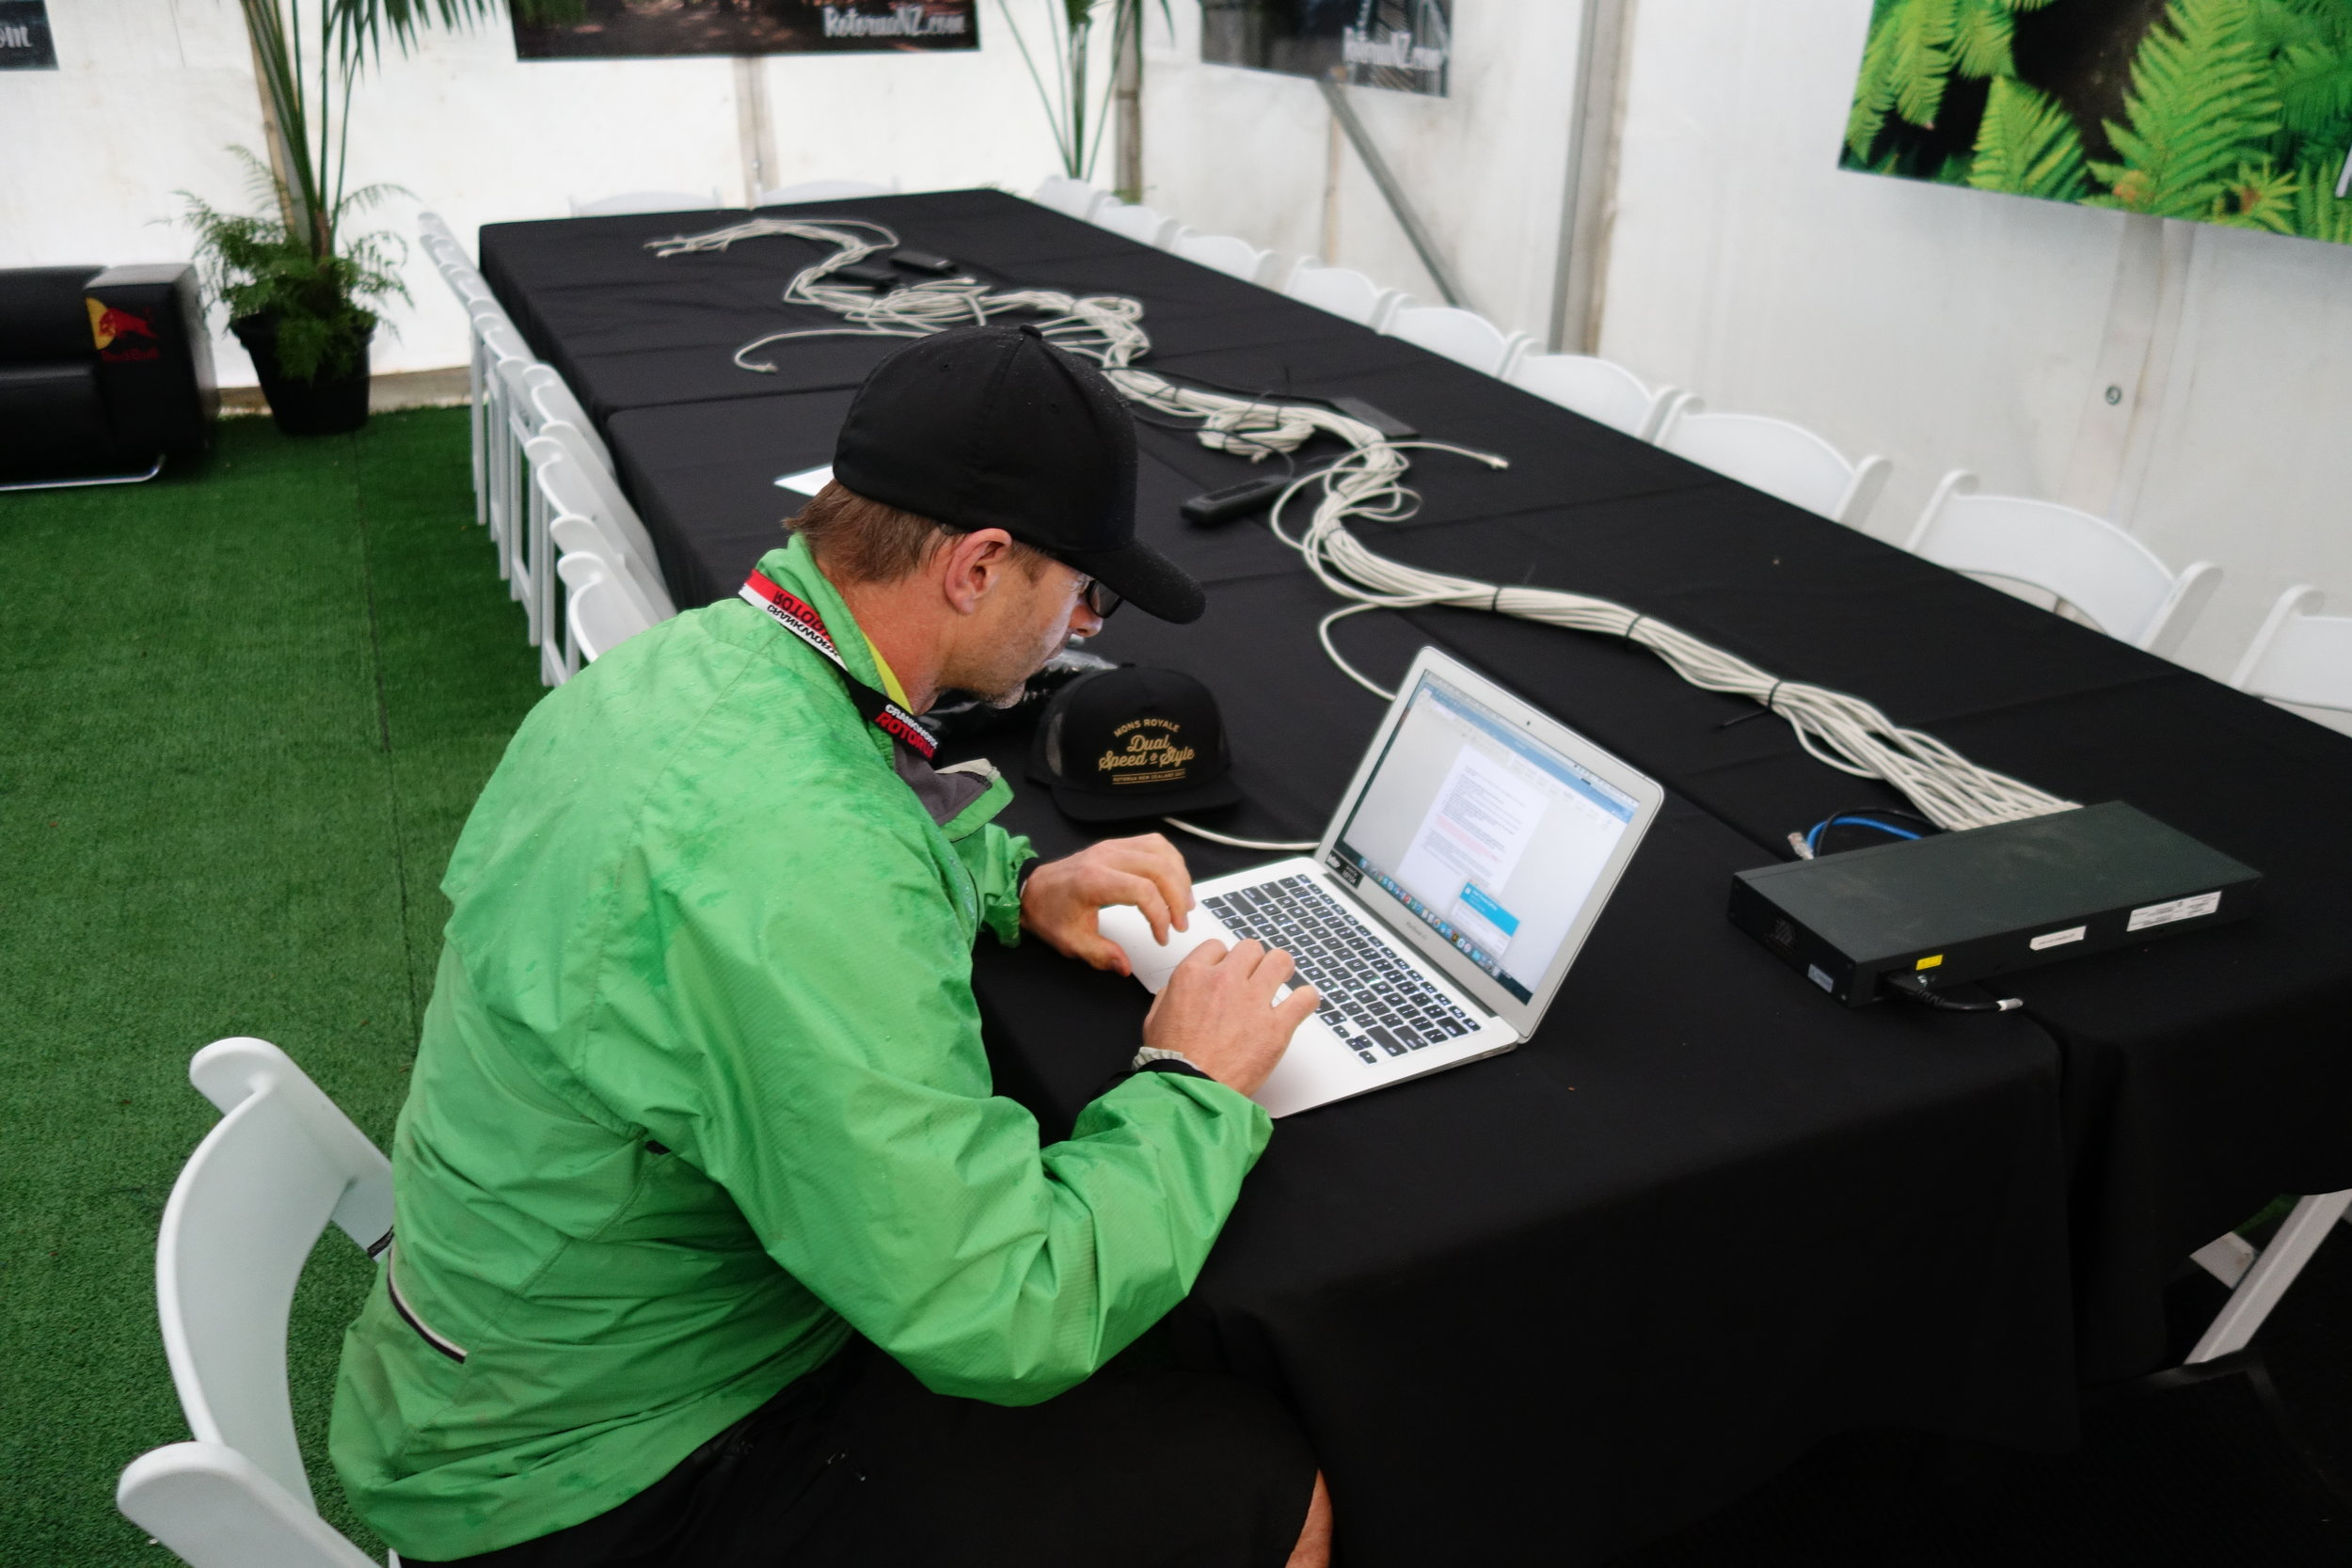 I settle in to do some high rate media stuff in the media tent. The food has all gone and typically the other journos have buggered off for a snooze. They want you to believe it's all work and no play. Take a photo, write some crap then all they do is drink beer, then vodka then maraud around the mall fist bumping the pros.